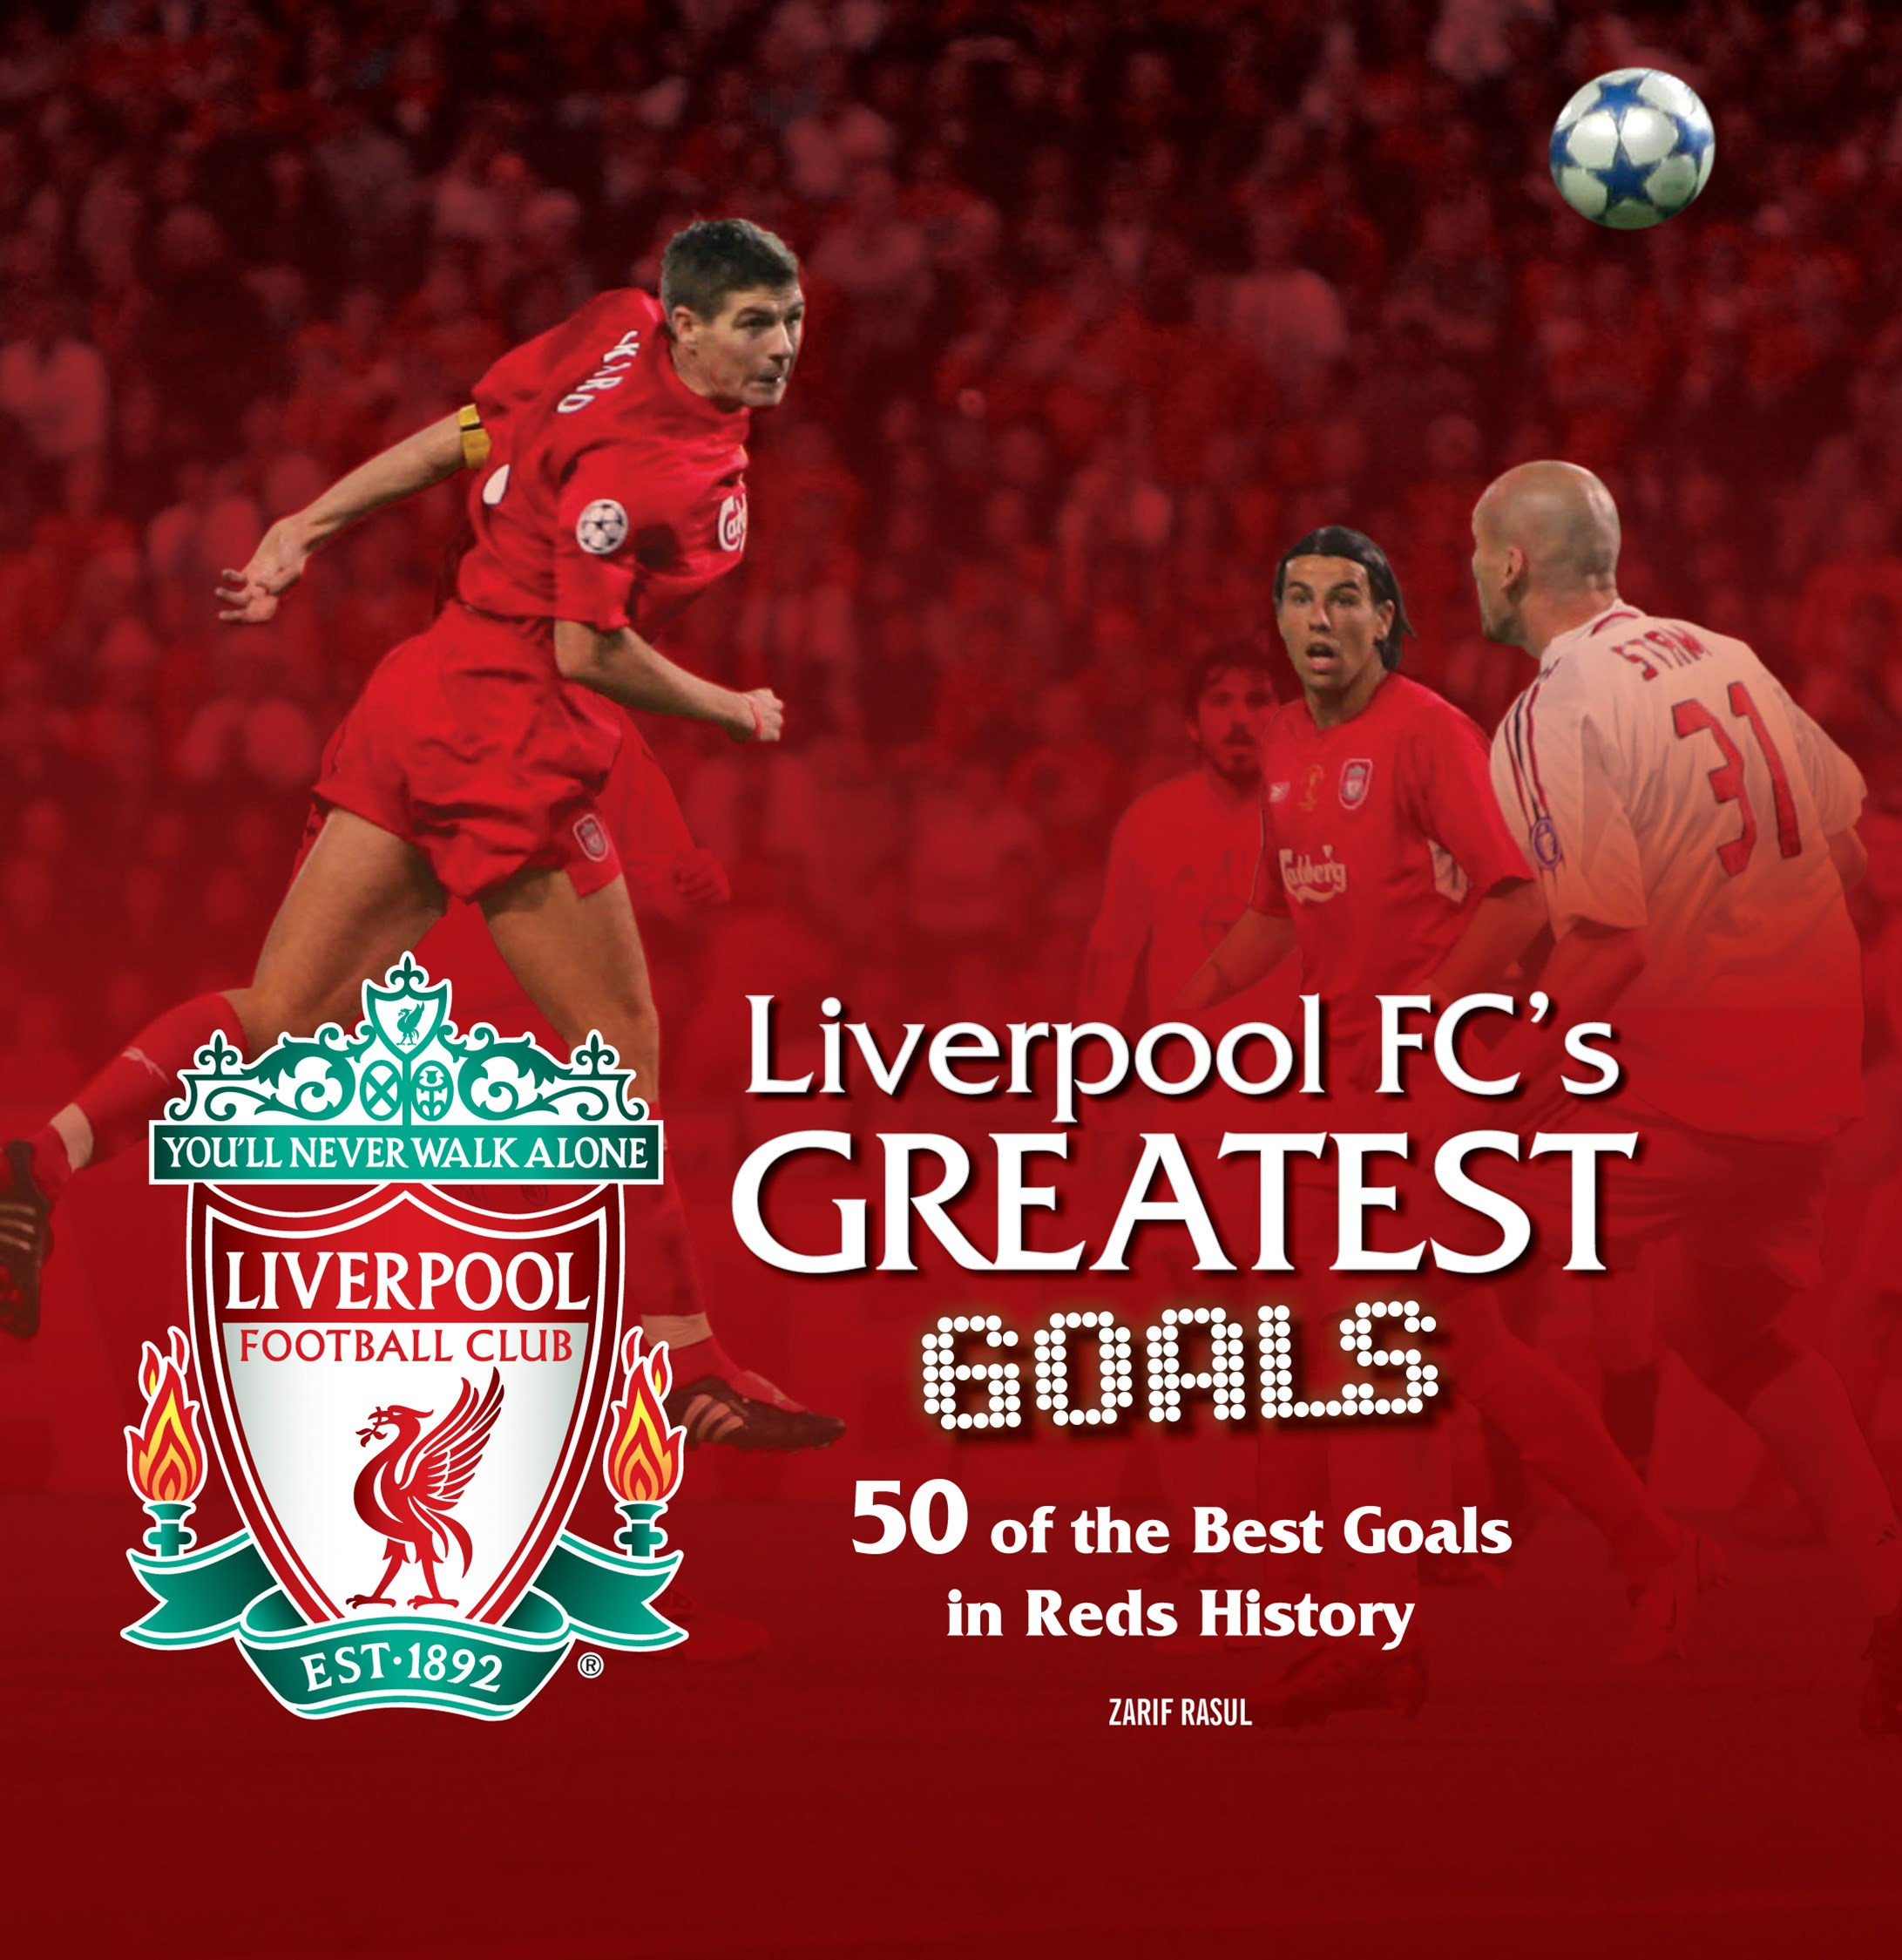 Liverpool FC's Greatest Goals